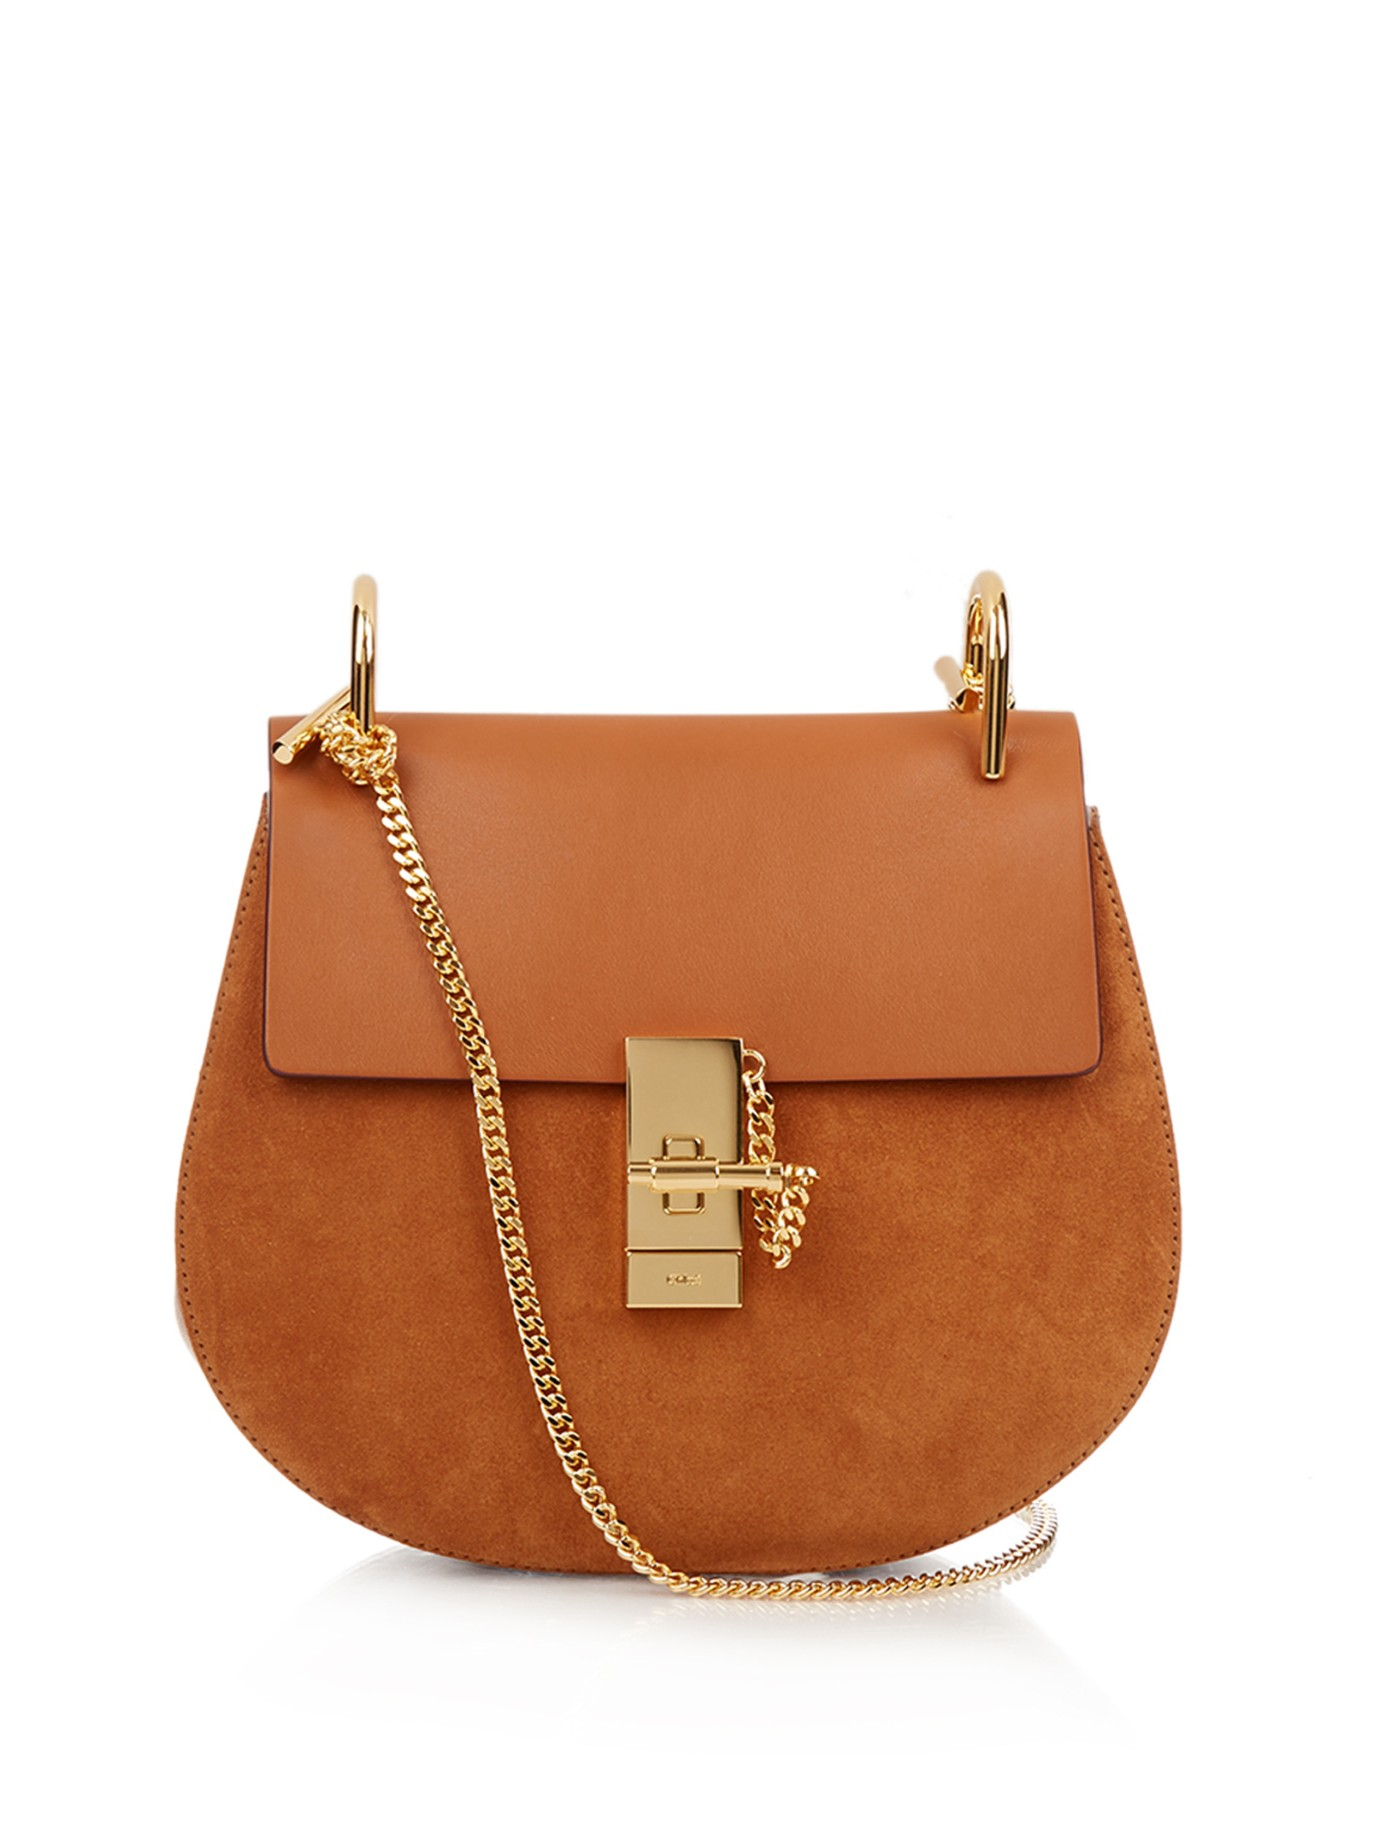 Chloé Drew Small Leather And Suede Cross-Body Bag in Brown